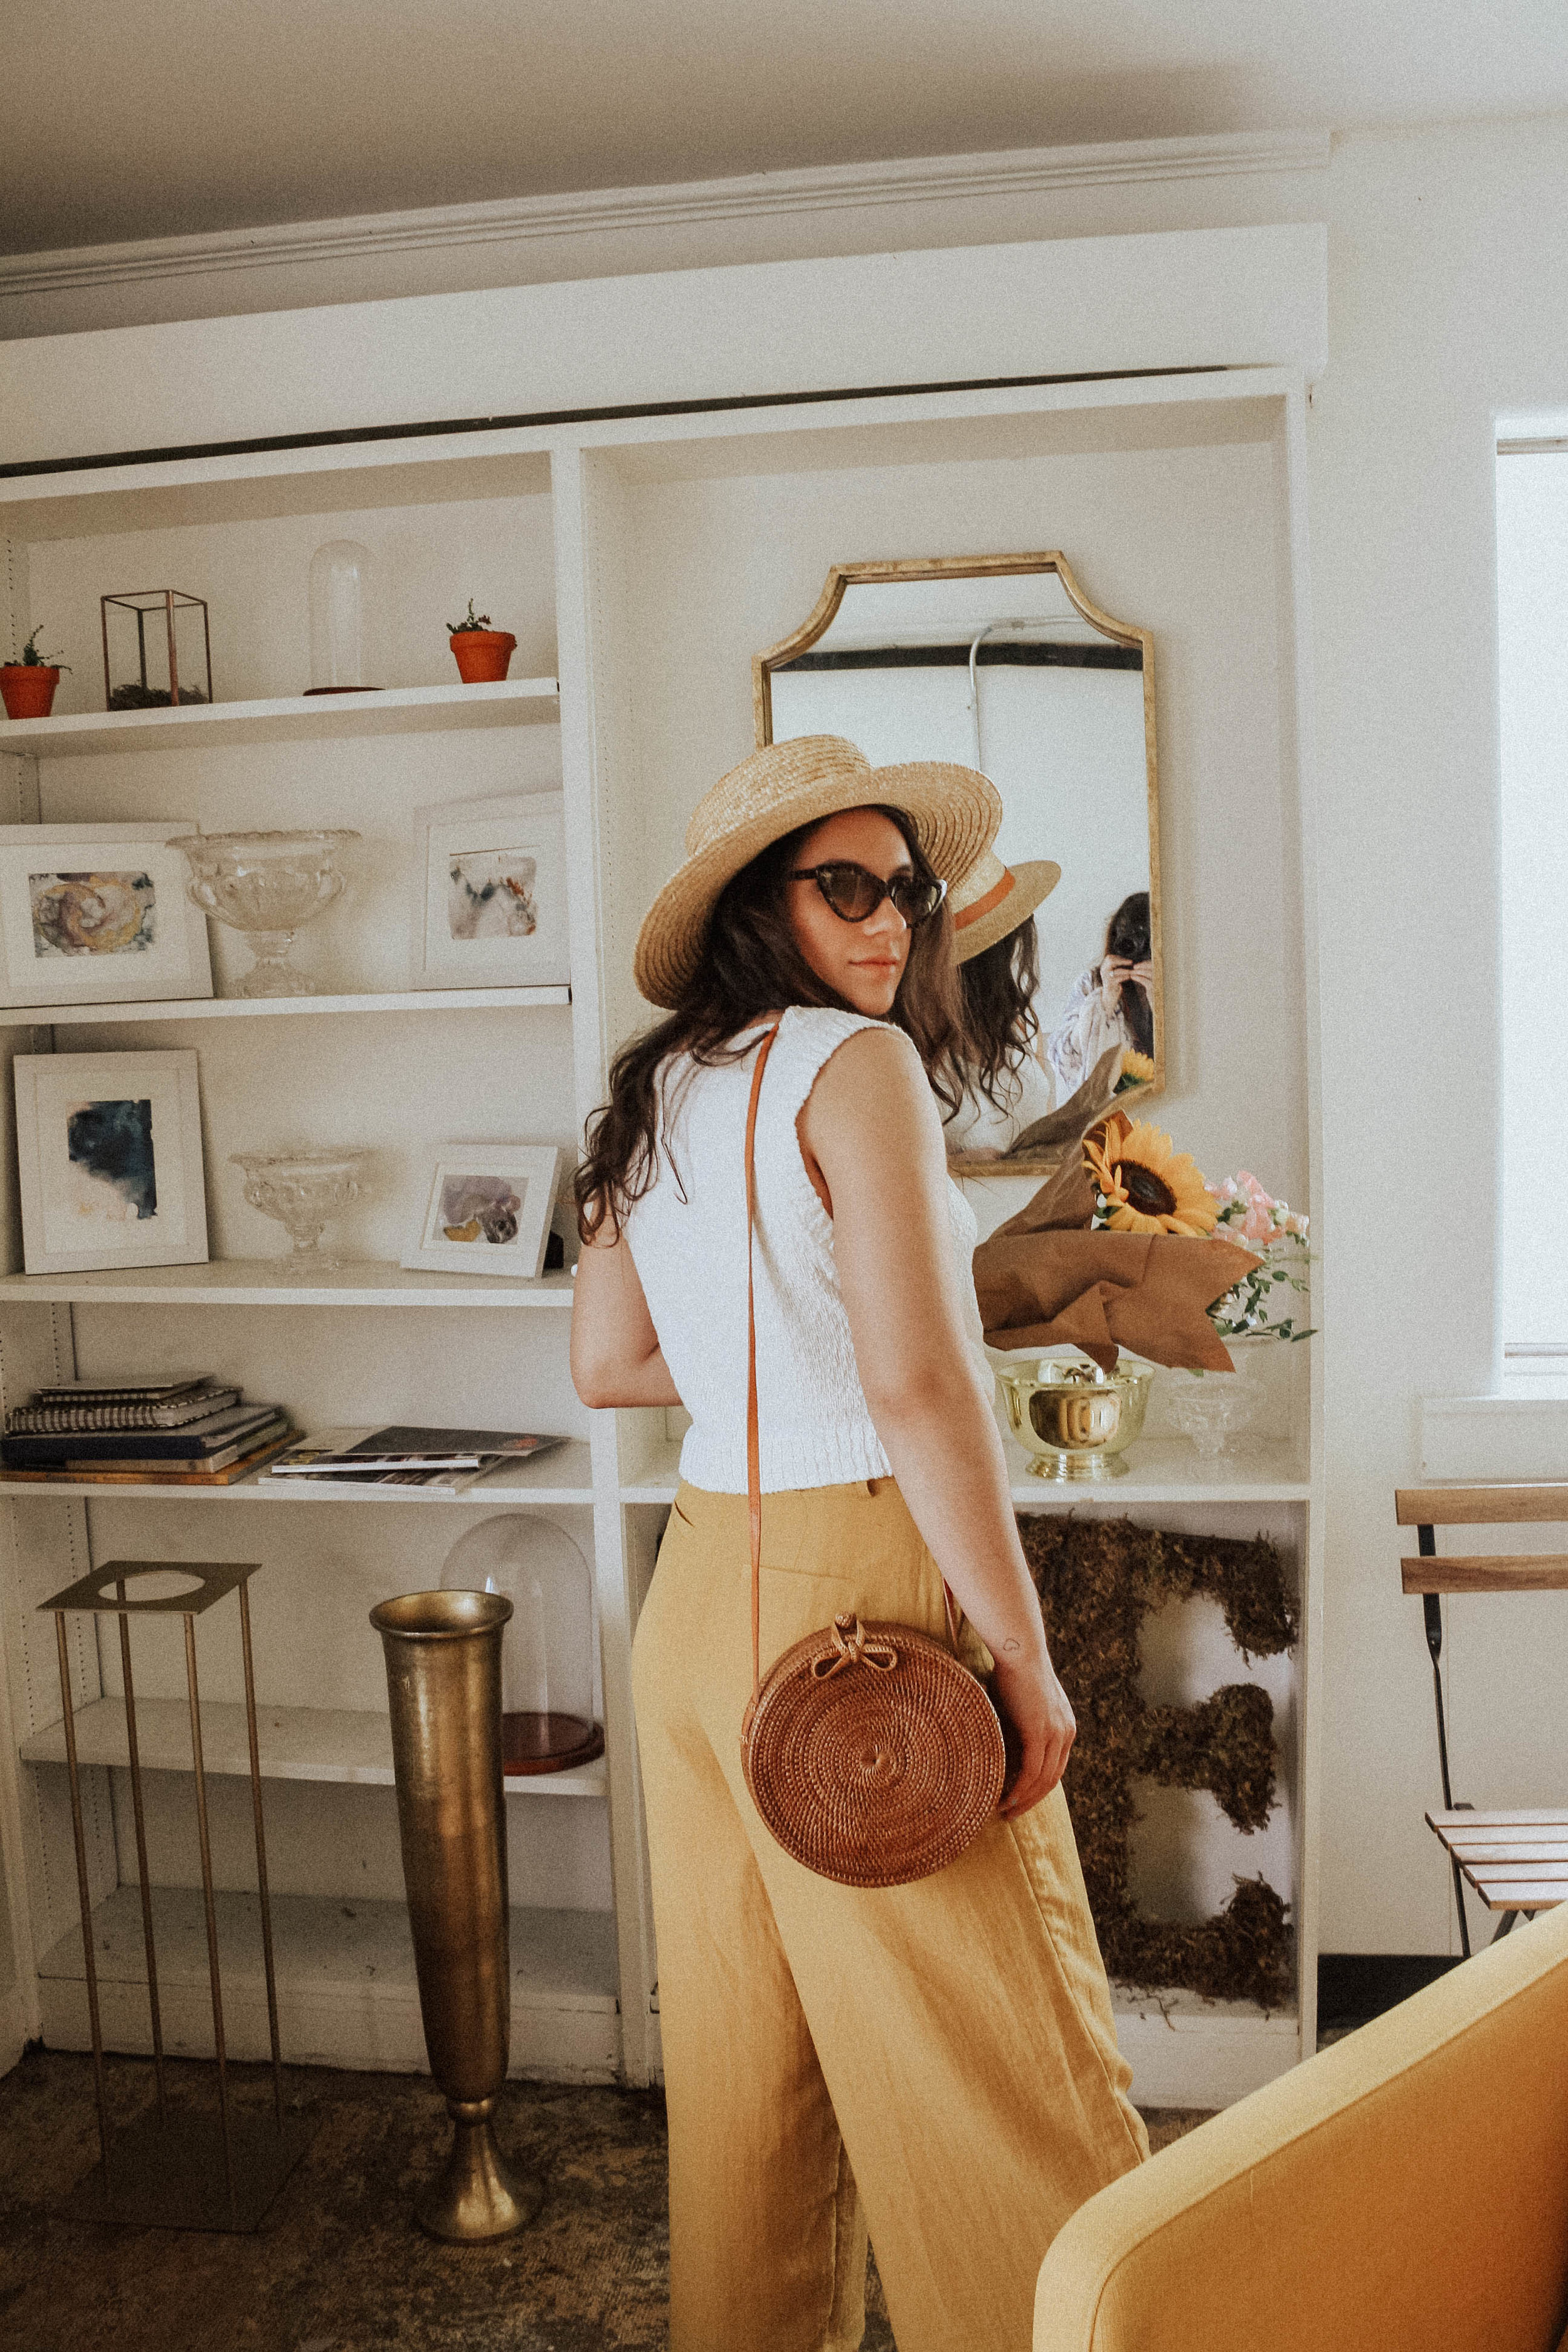 Hat: Lack of Colors; Sunglasses: Amuse Society X D'Blanc; Top: Moon River; Pants: Lost + Wander; Purse: Cleobella